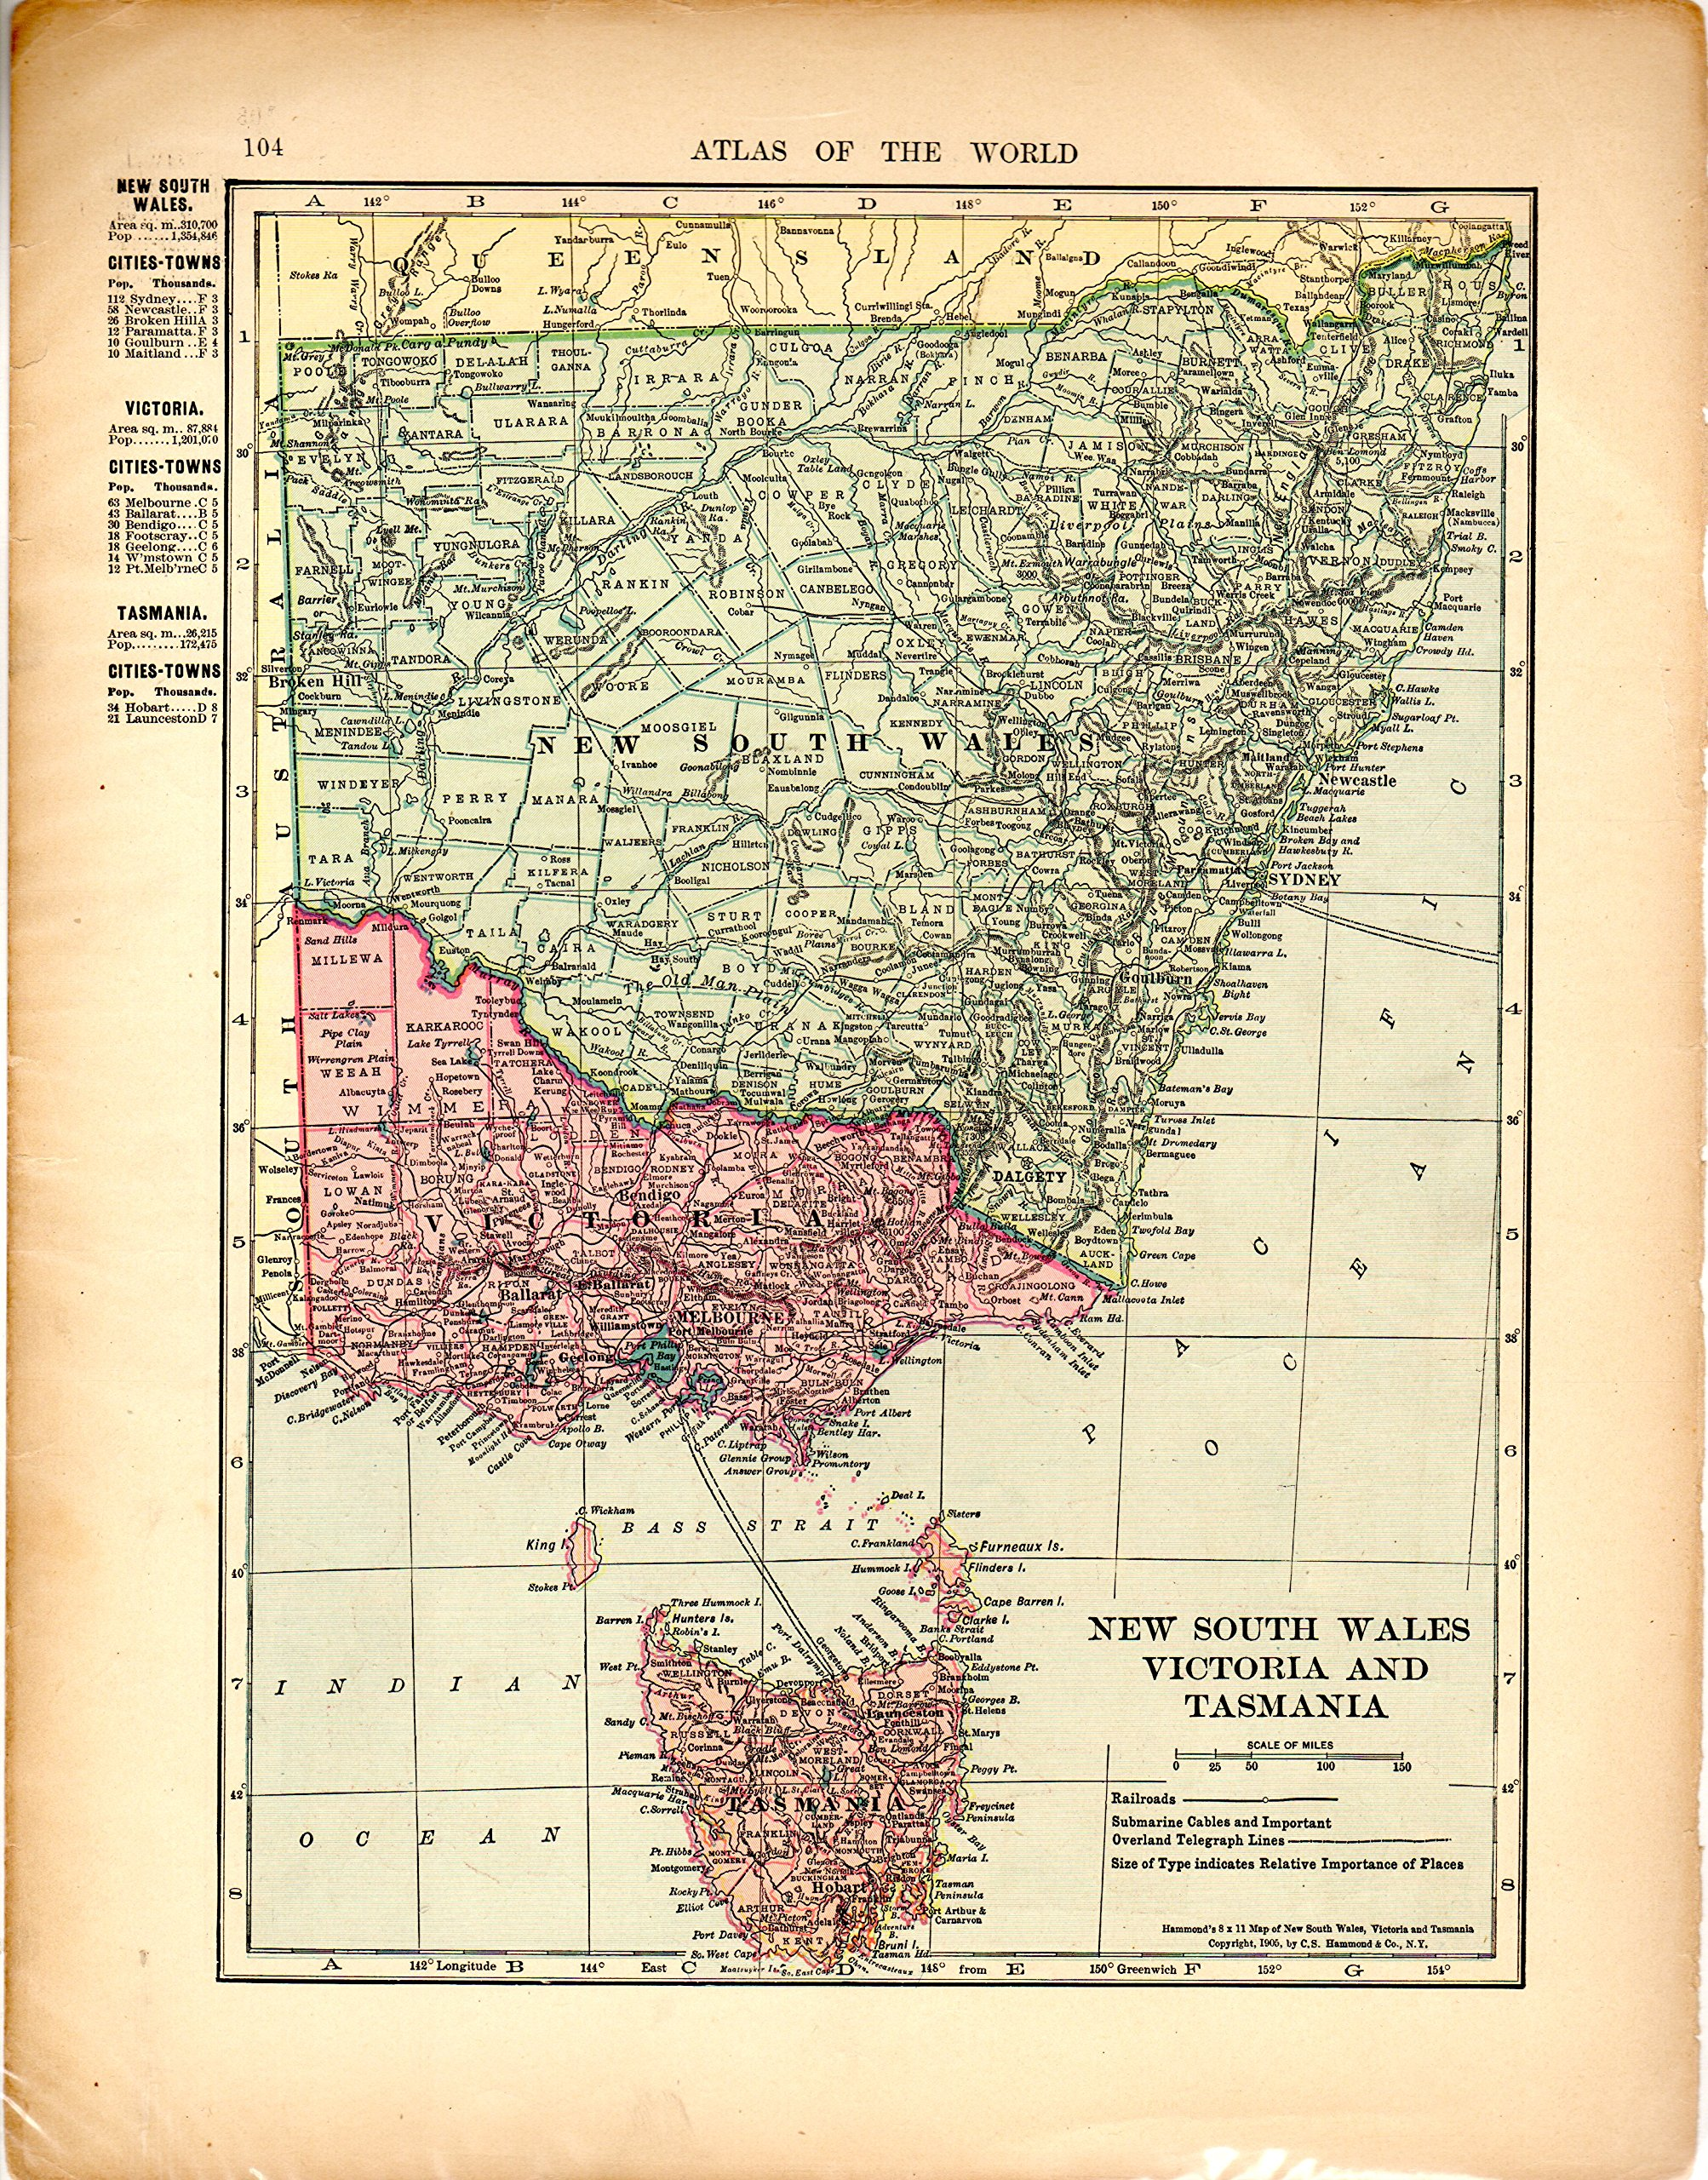 MAP: 'New South Wales, Victoria and Tasmania'...from ... Tasmania Map World on nigeria world map, tanzania world map, major deserts of the world map, crimea world map, manitoba world map, north island world map, bowen world map, minorca world map, gulf of carpentaria world map, indonesia world map, new guinea world map, hobart world map, bismarck archipelago world map, australia world map, flinders island world map, philippines world map, cambridge world map, cape barren island world map, bass strait world map, new zealand world map,